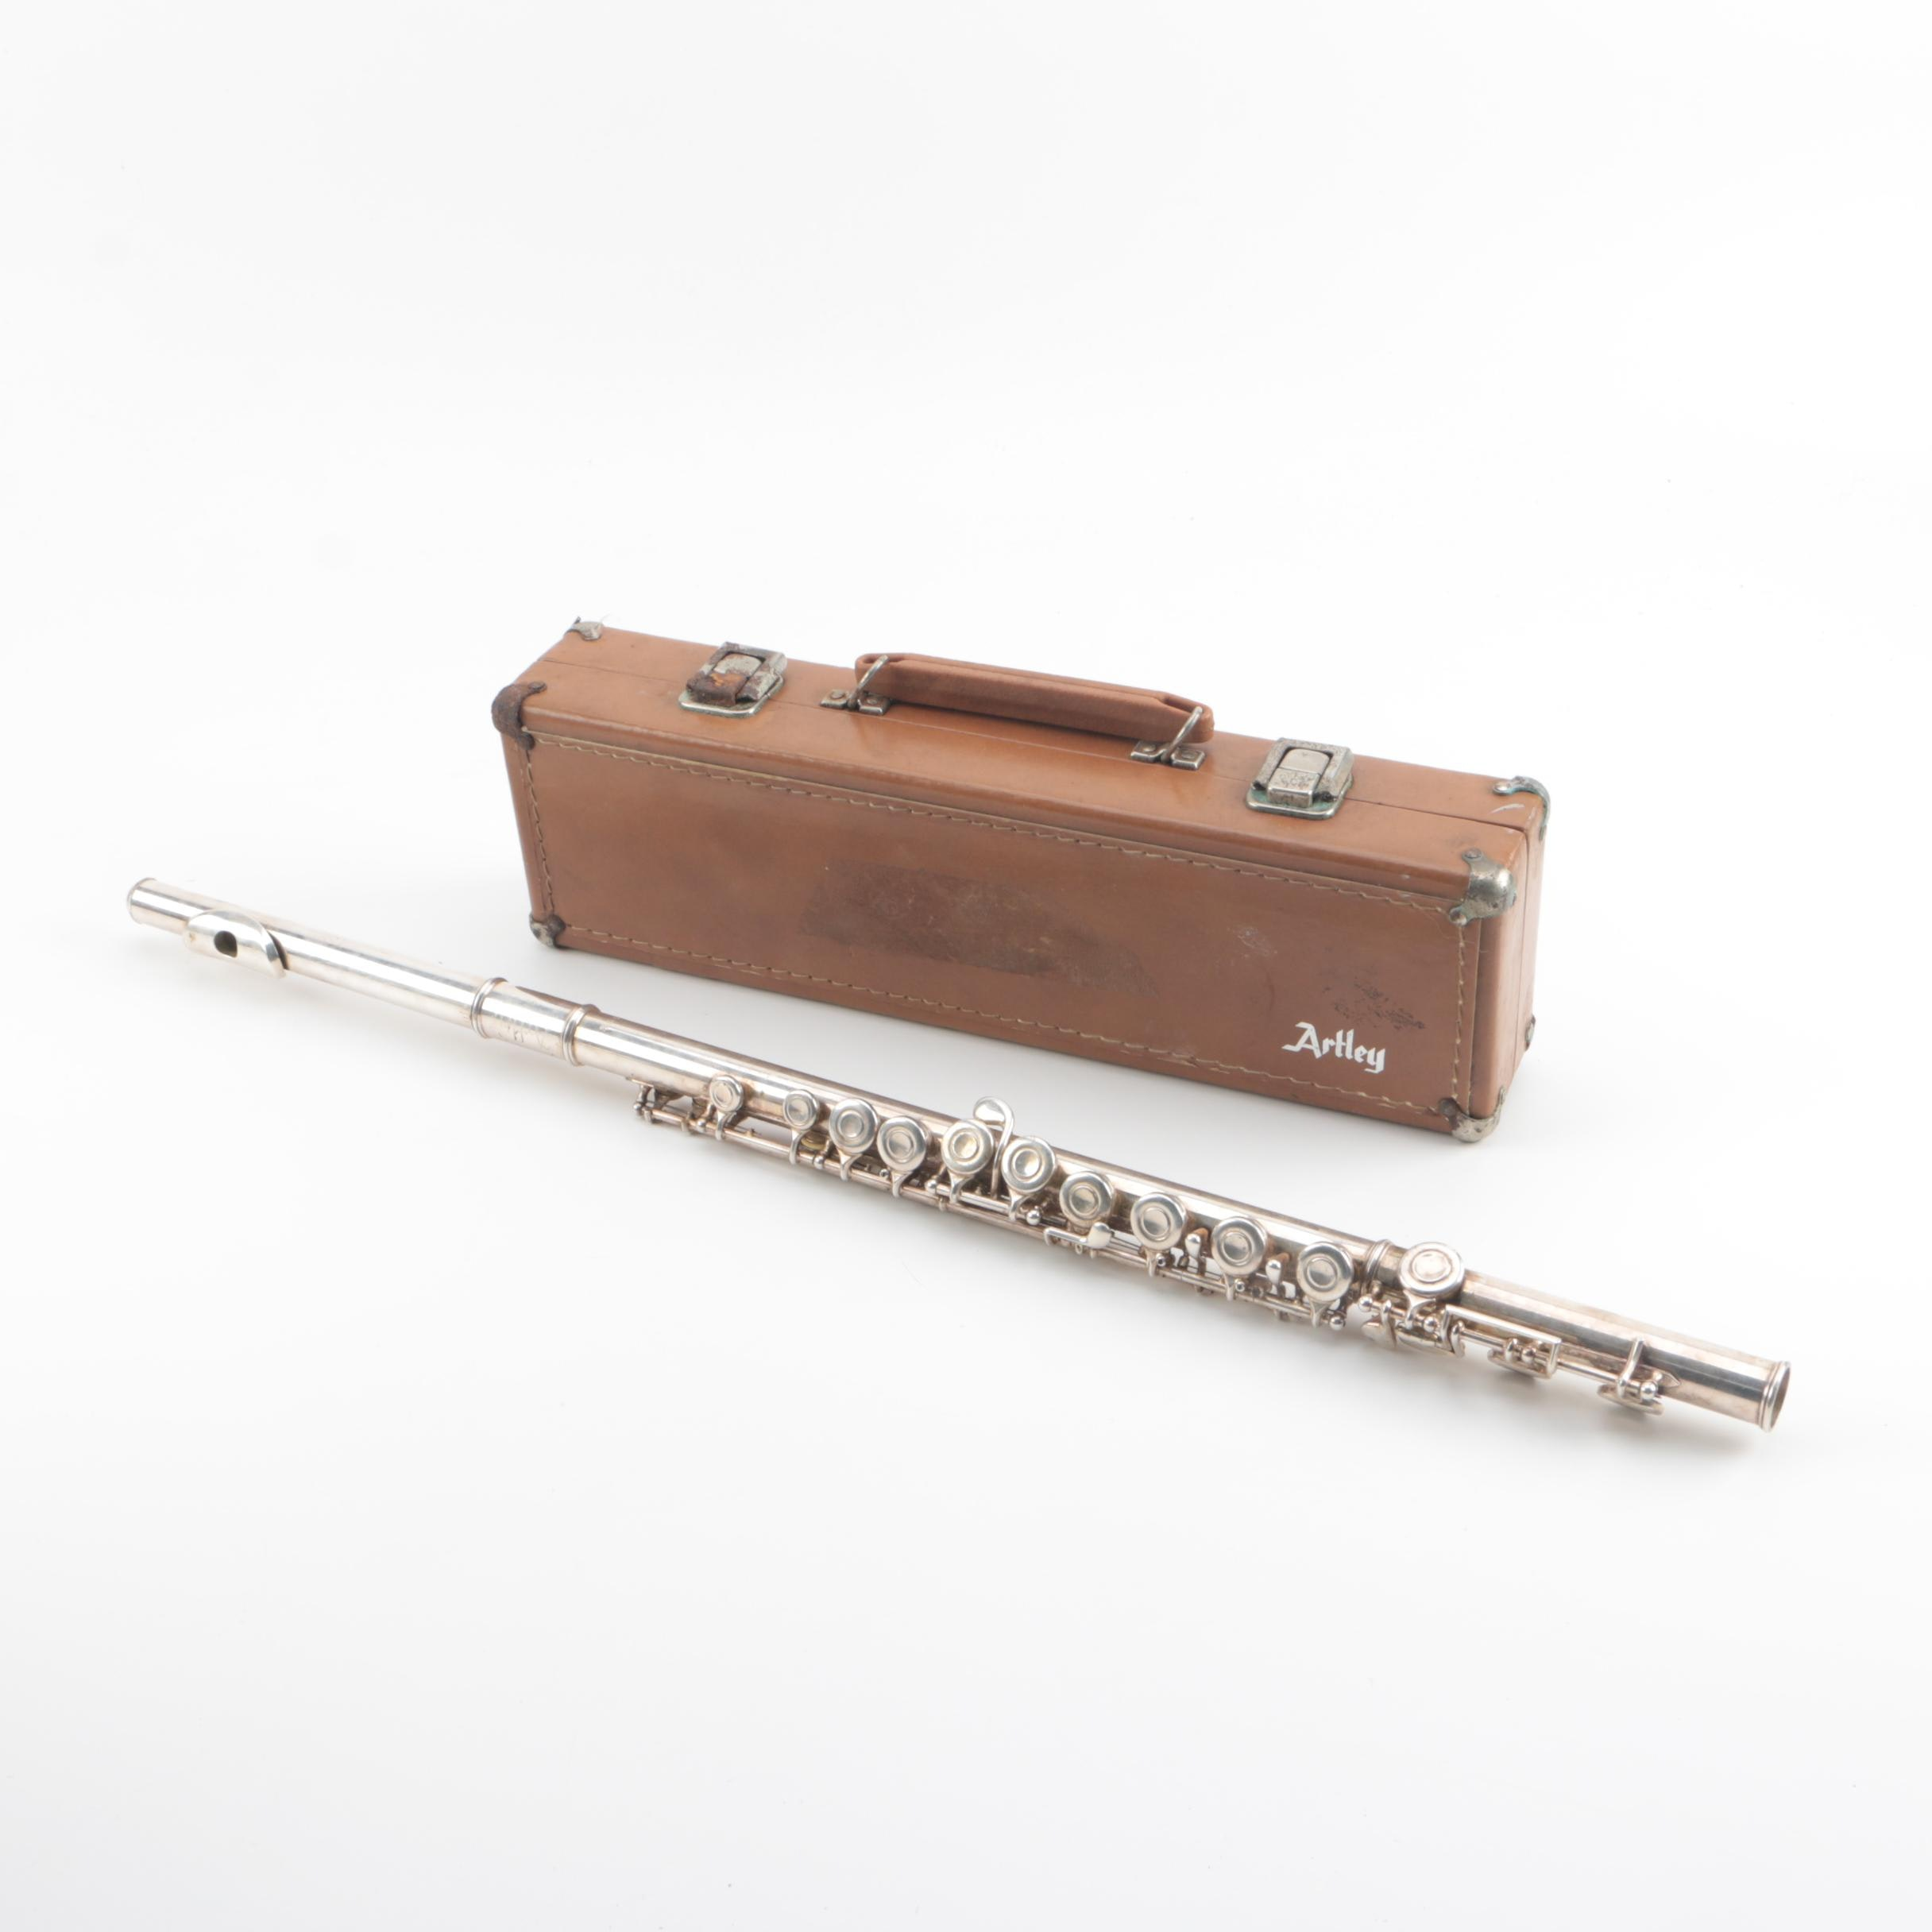 1957 Artley 18-0 Closed Hole Flute with Case